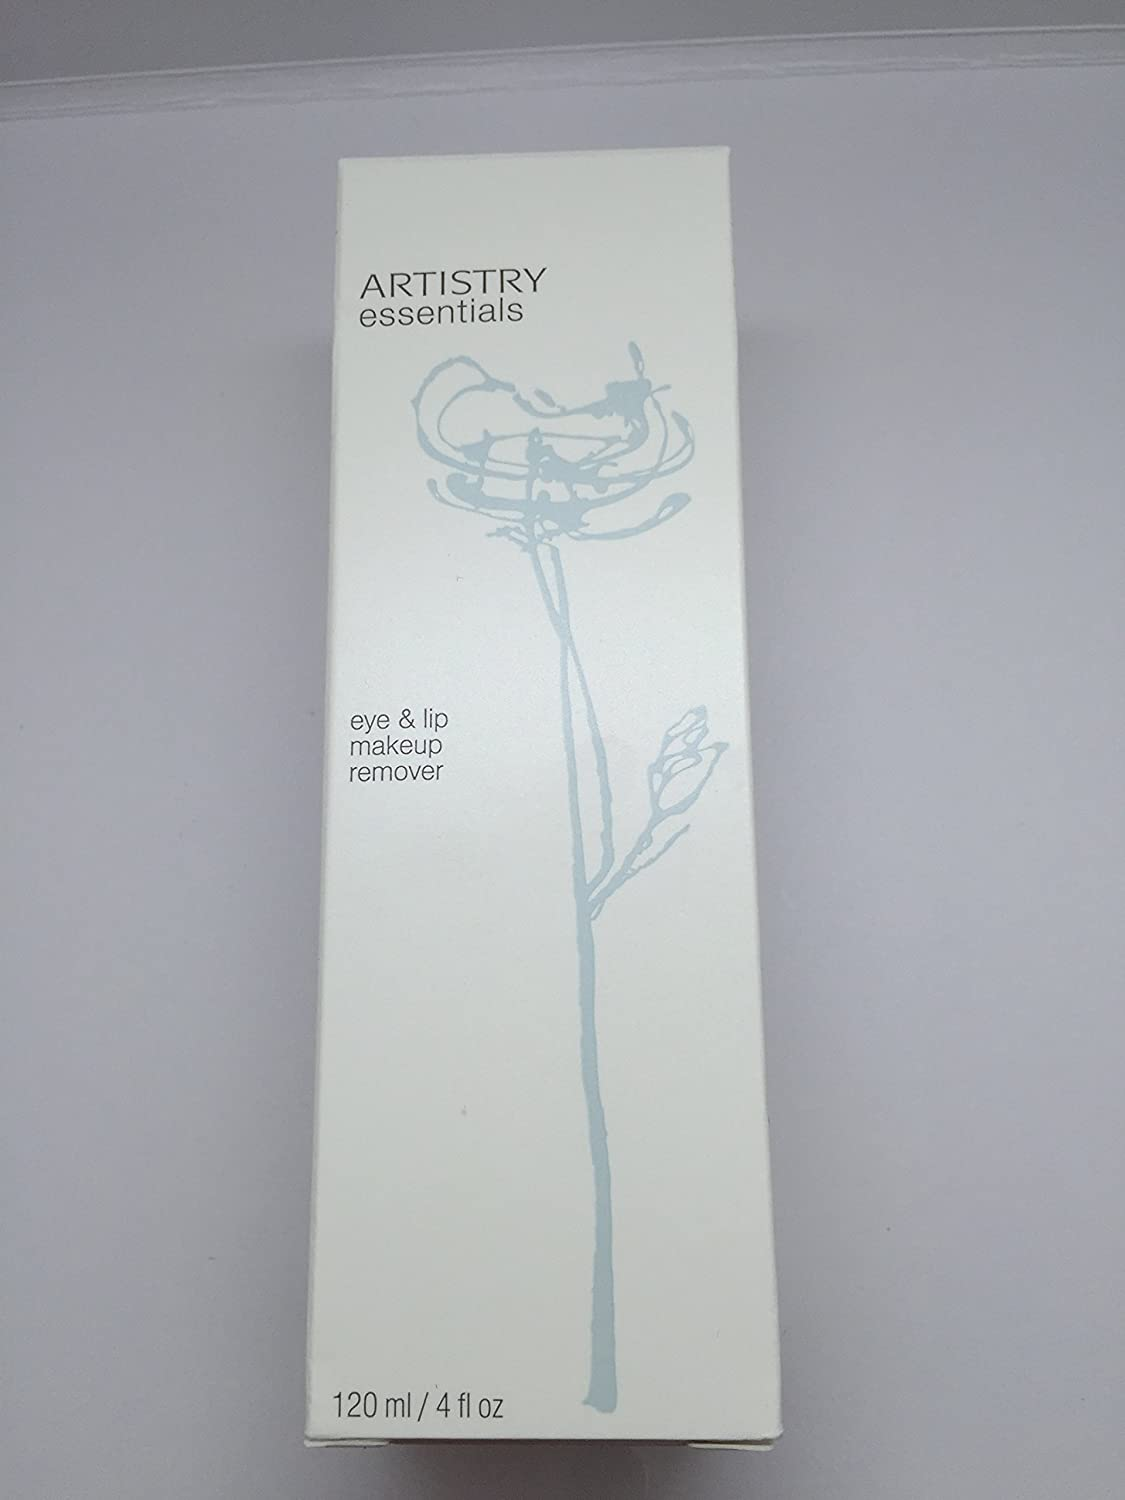 Amazon.com : Artistry Essentials Eye & Lip Makeup Remover : Amway Makeup Remover : Beauty